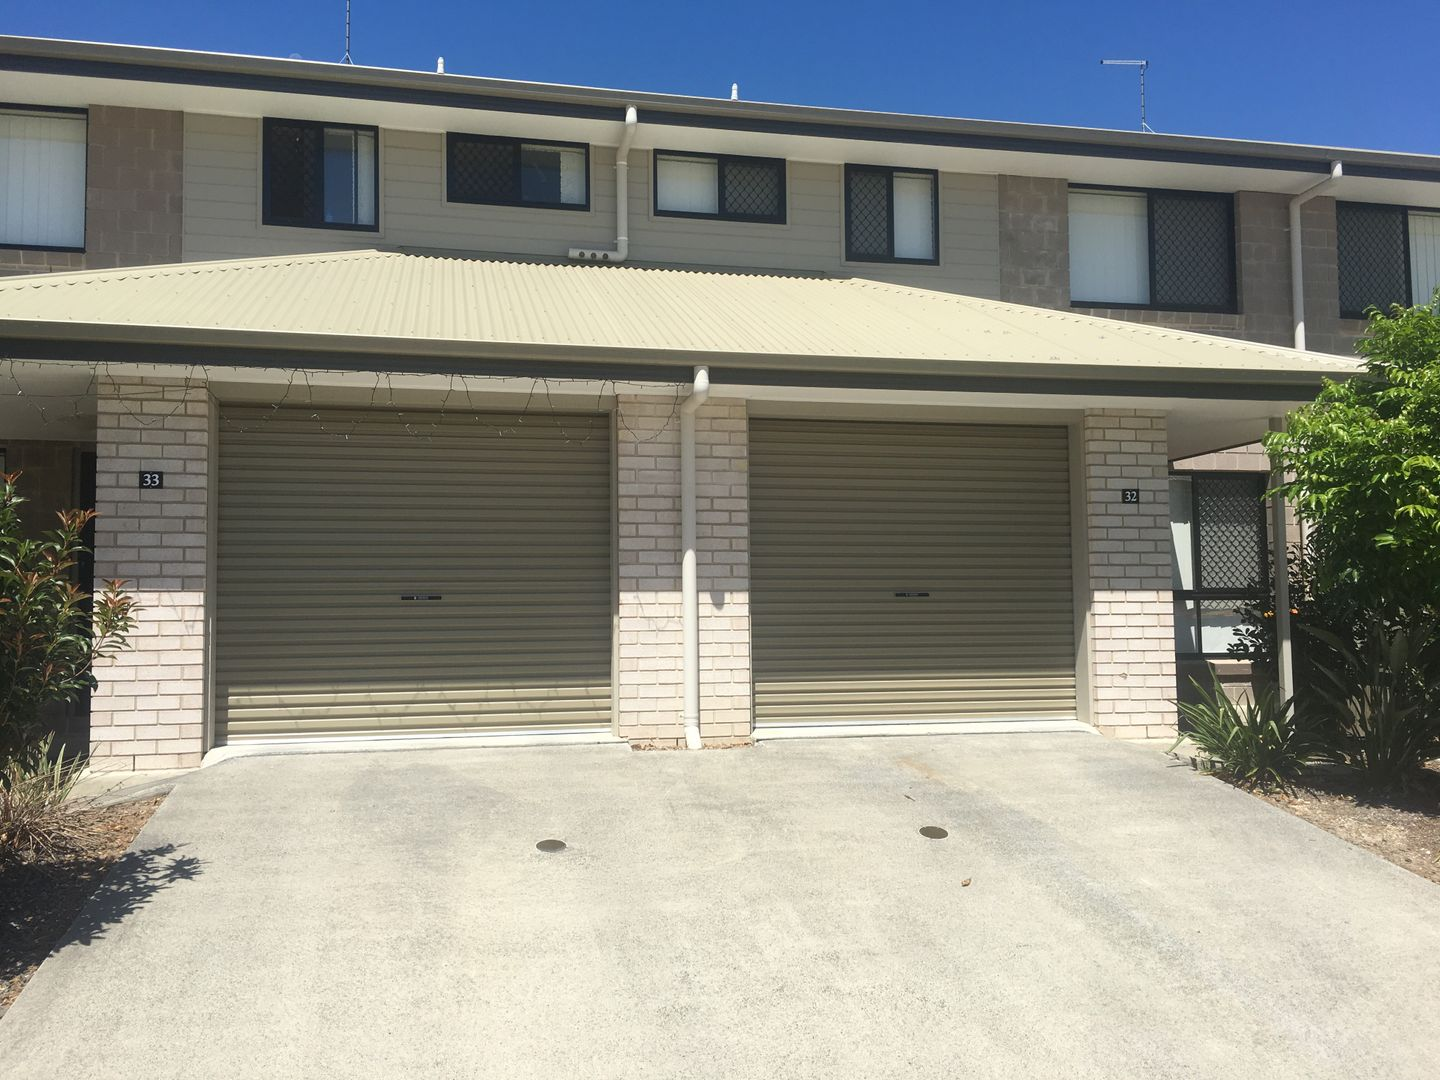 Orchard road richlands qld townhouse for rent